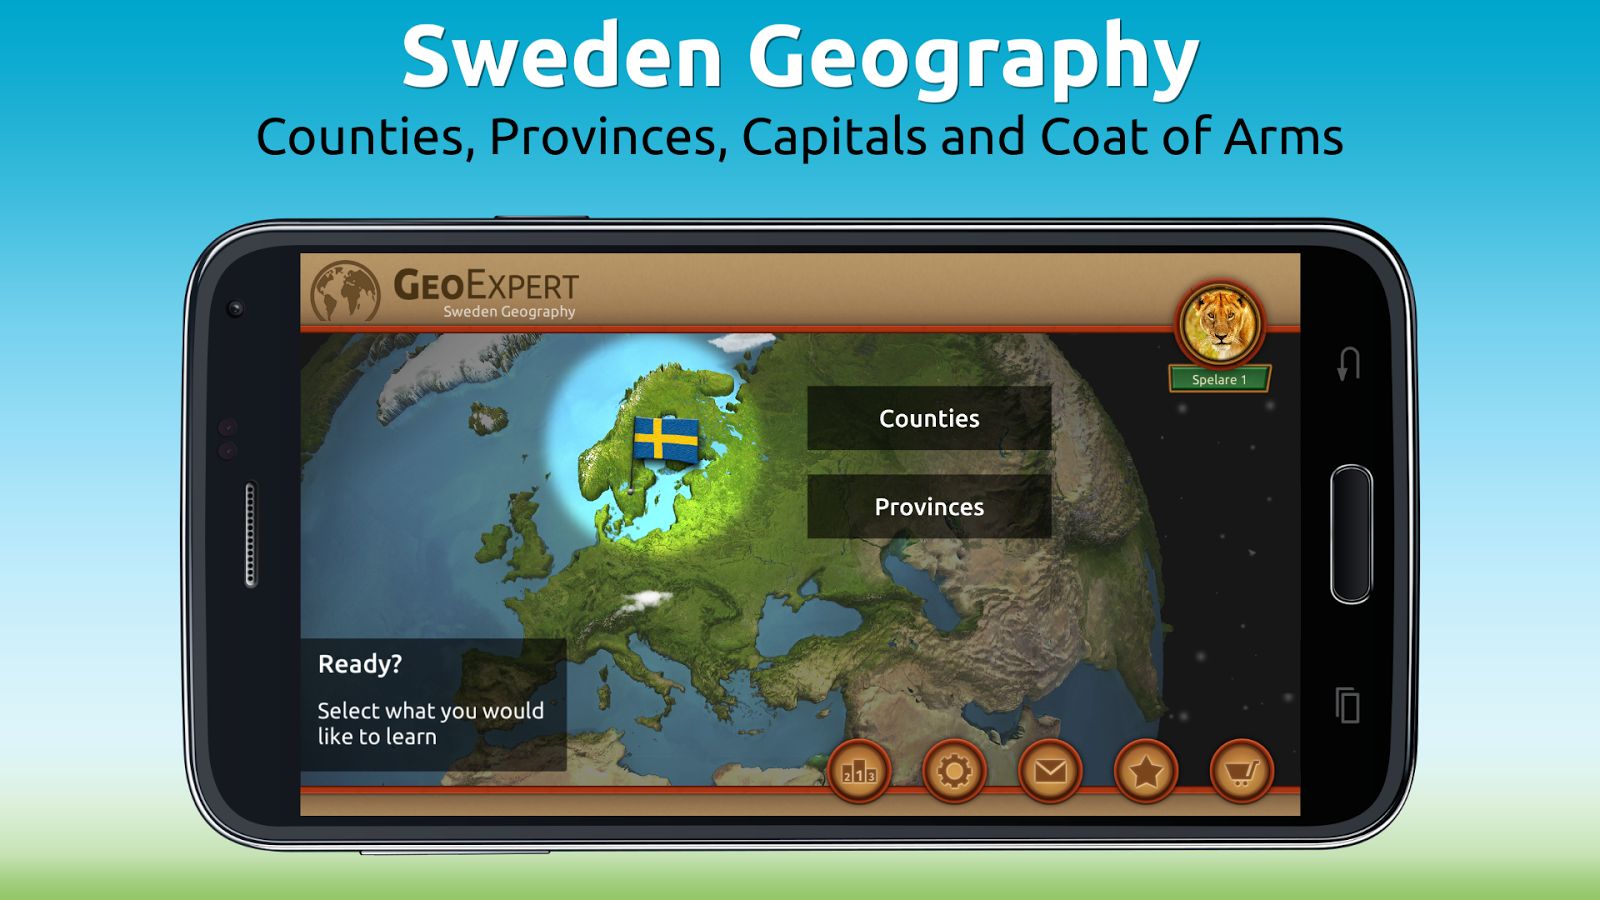 GeoExpert - Sweden Geography Screenshot 0